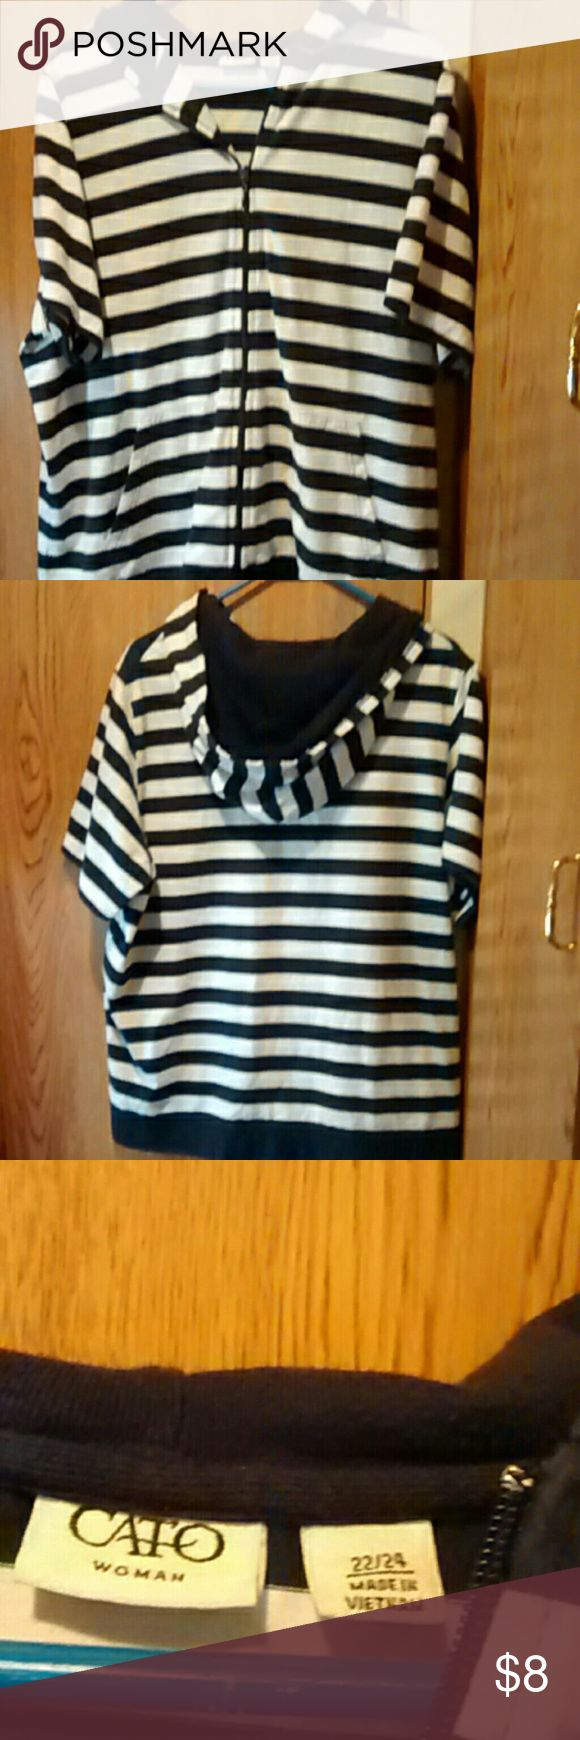 Black and white short sleeve hoodie sz 22/24 Black and white short sleeve zip-up hoodie. It Is by Cato woman . Size 22/24 and then gently pre-worn condition. Smoking / pet home Questions and offers are welcome No trades please Thanks for looking! Other